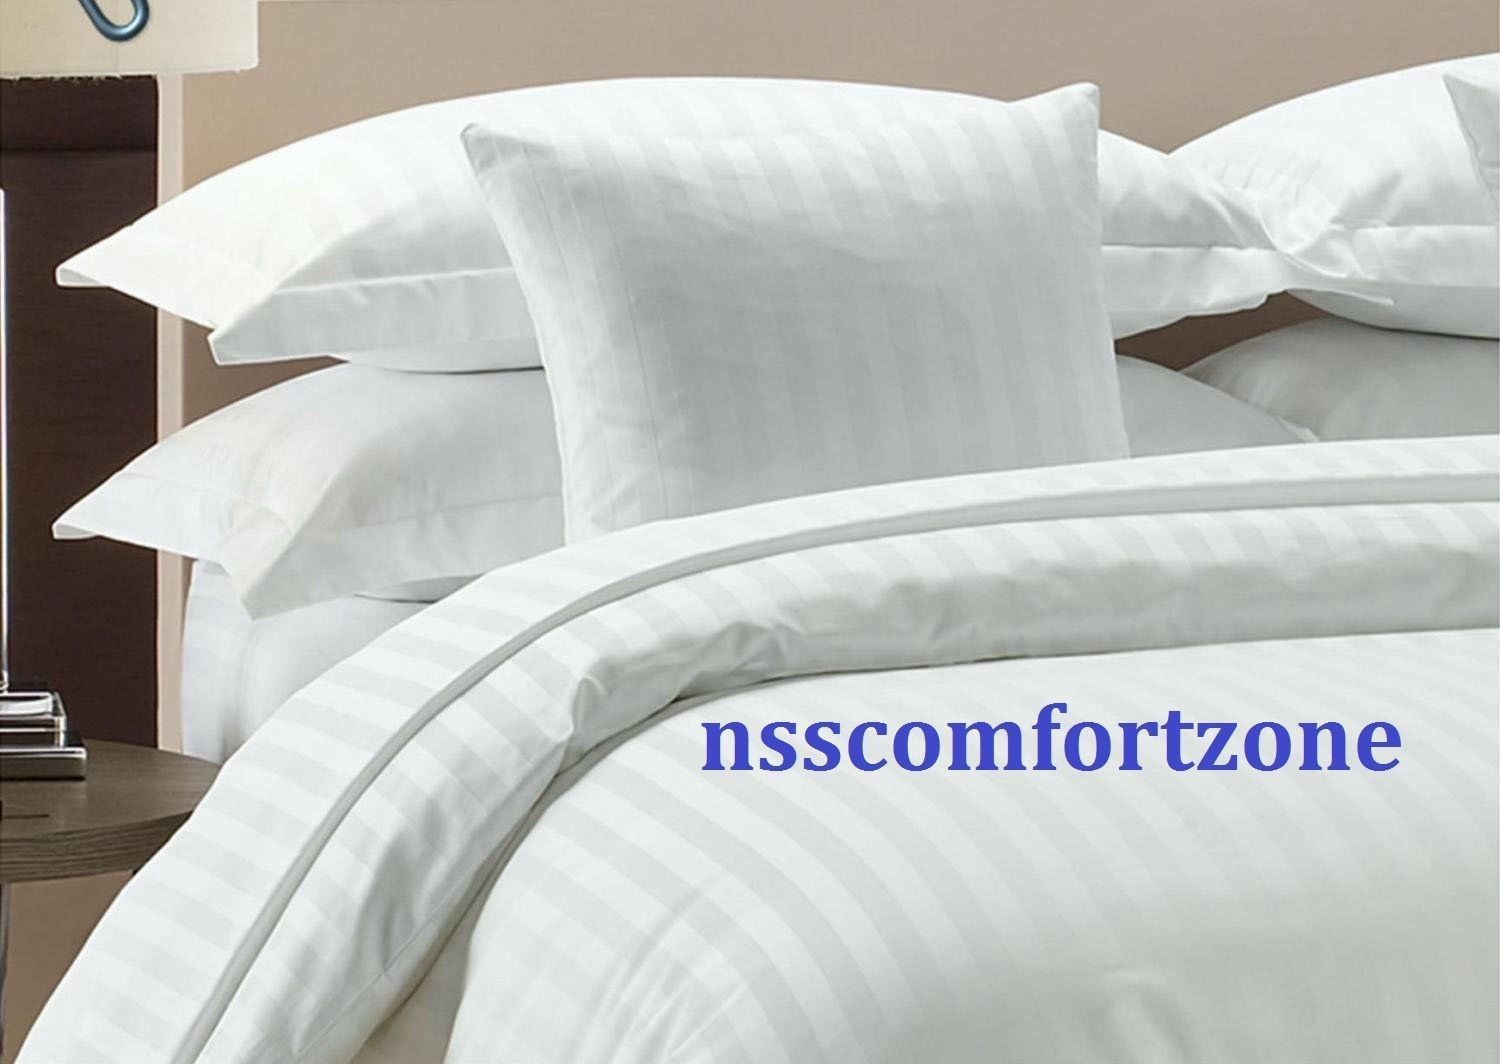 About white 1000tc egyptian cotton complete bedding collection sheet - Egyptian Cotton 800 1000 Tc White Solid Sheet Set Duvet Set Fitted Flat All Size Ebay